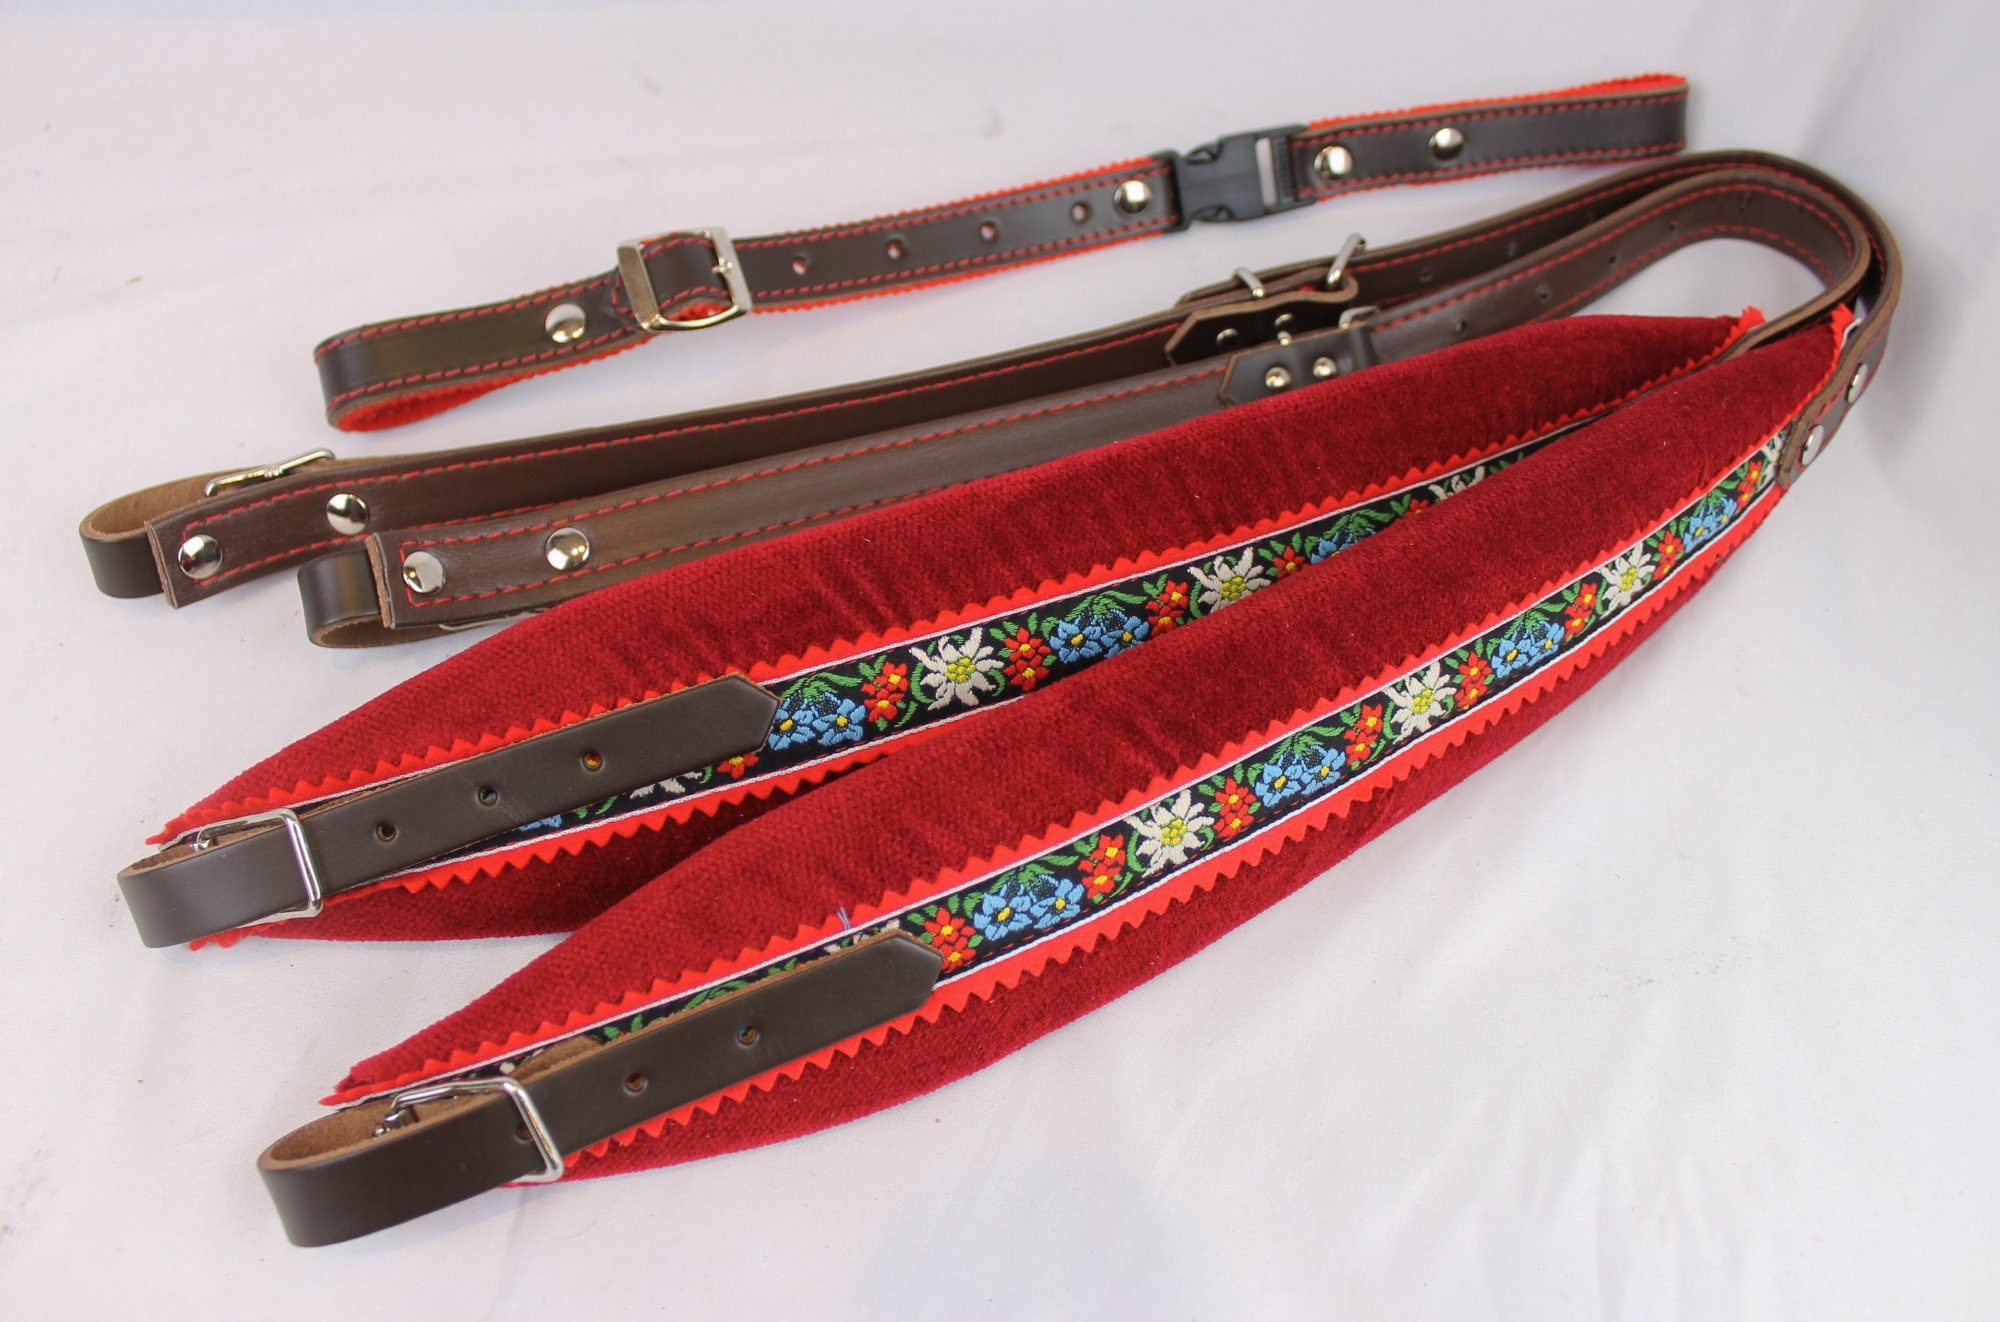 New Red Alpine Velour Fuselli Accordion Shoulder Straps Width (7cm / 2.8in) Length (85~105cm / 35~42.5in)